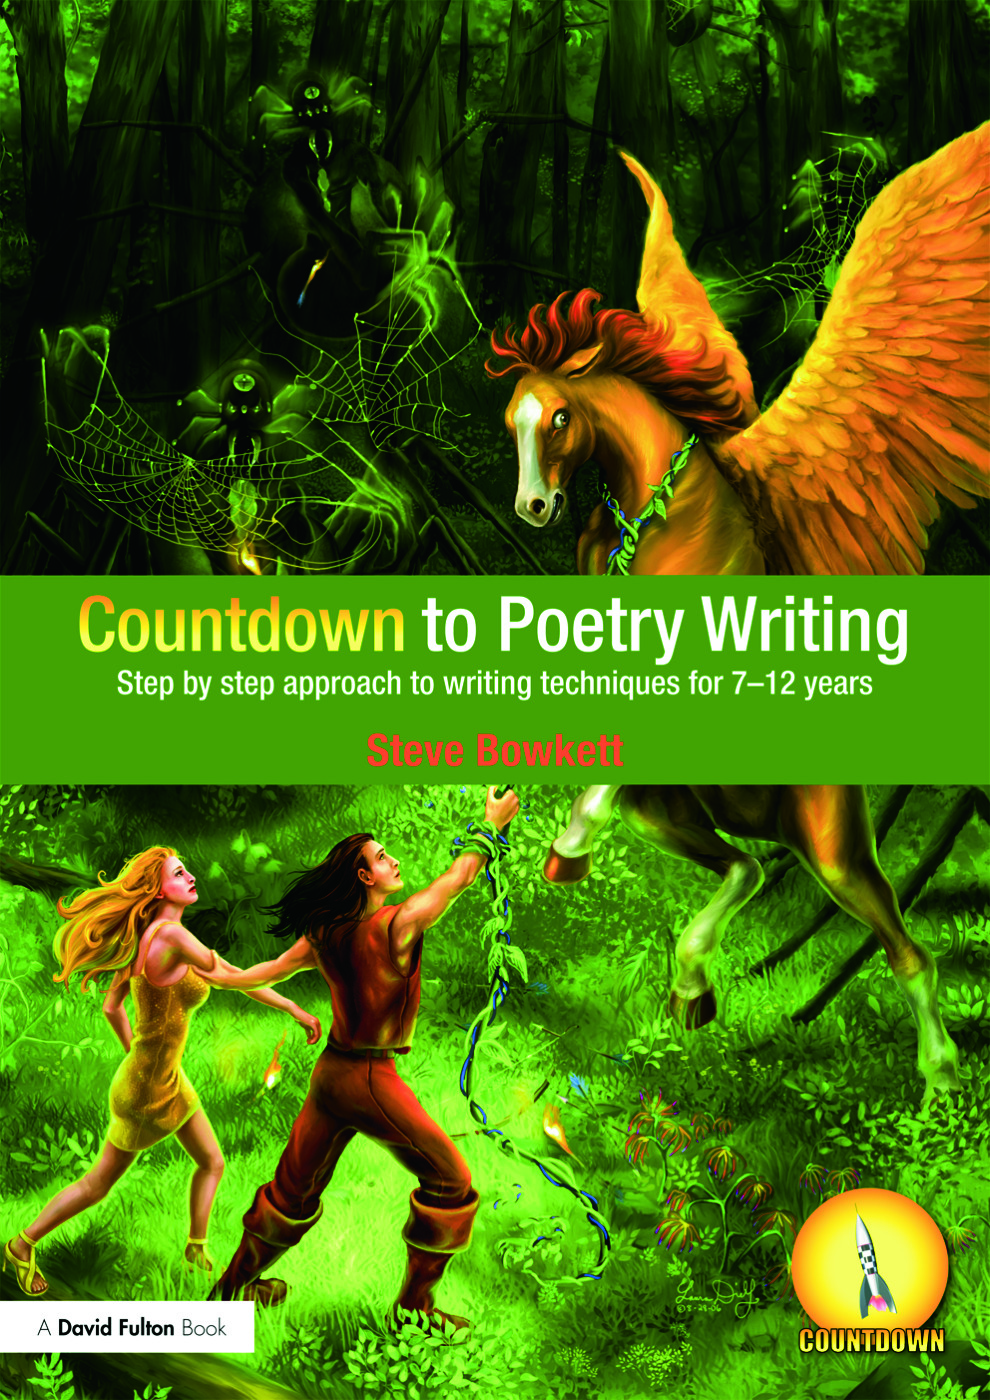 Countdown to Poetry Writing: Step by Step Approach to Writing Techniques for 7-12 Years (Paperback) book cover